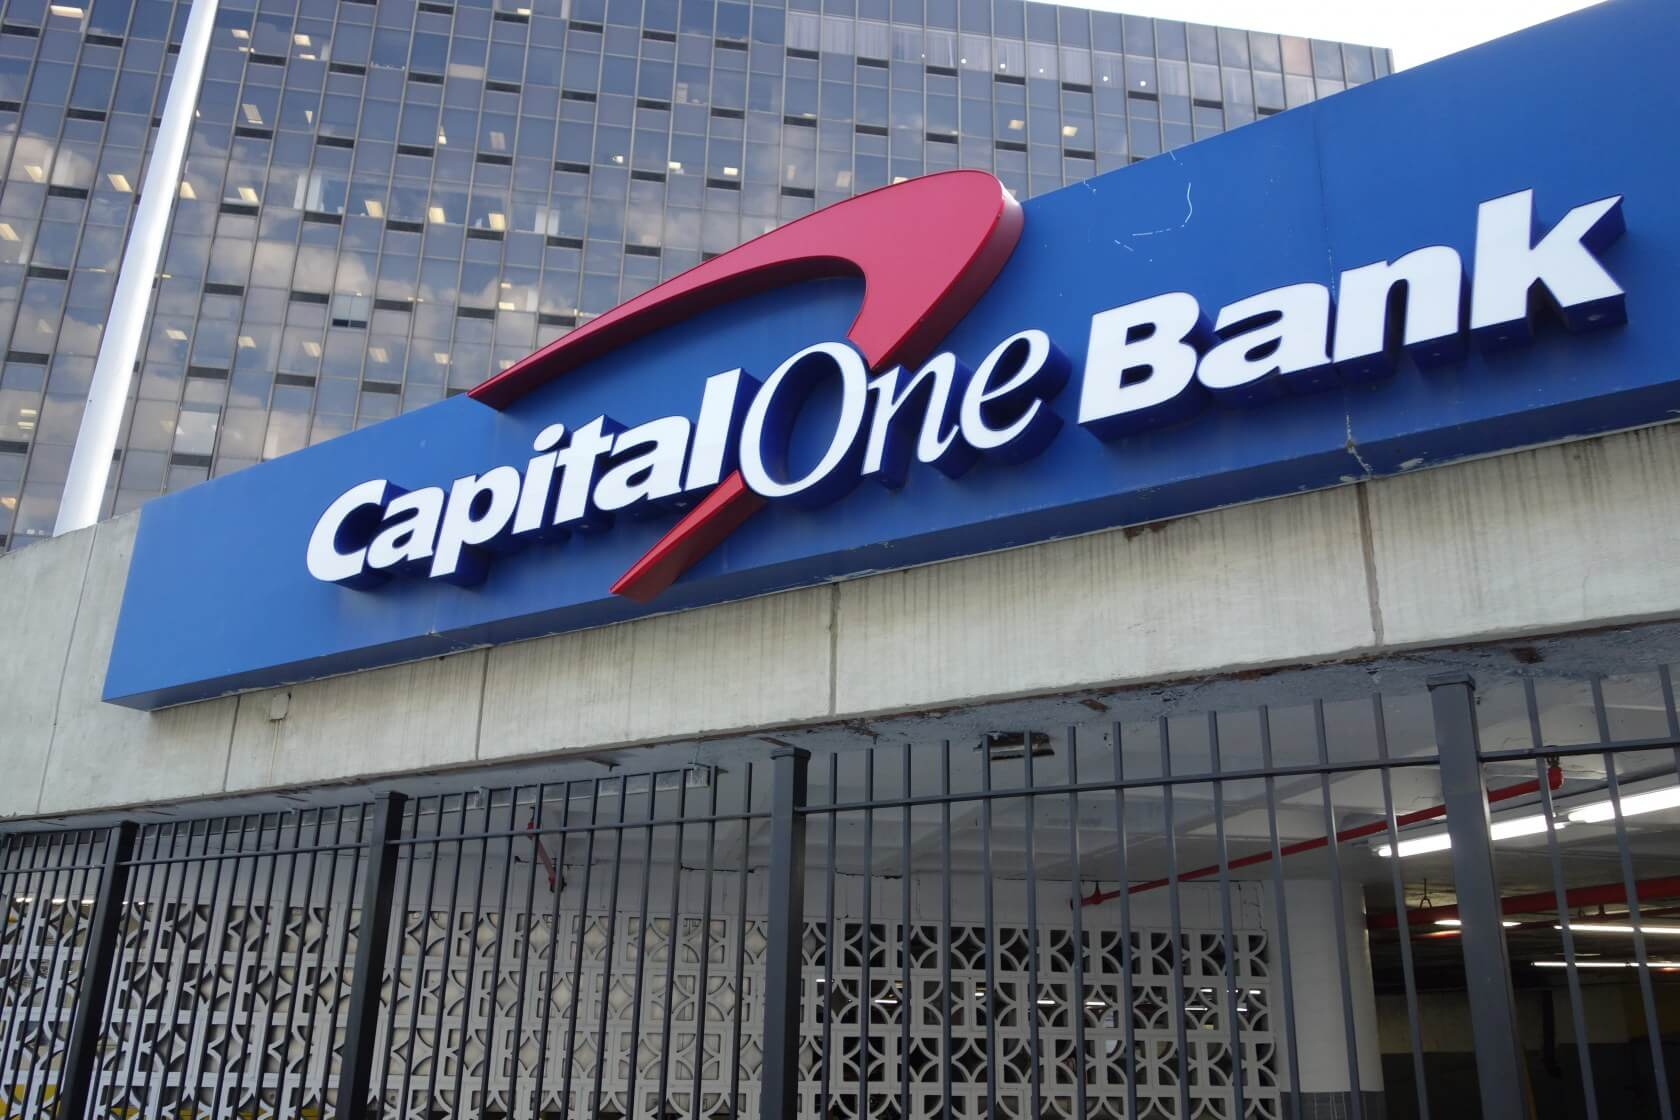 New York Attorney General vows to investigate Capital One breach and provide citizens with 'relief'